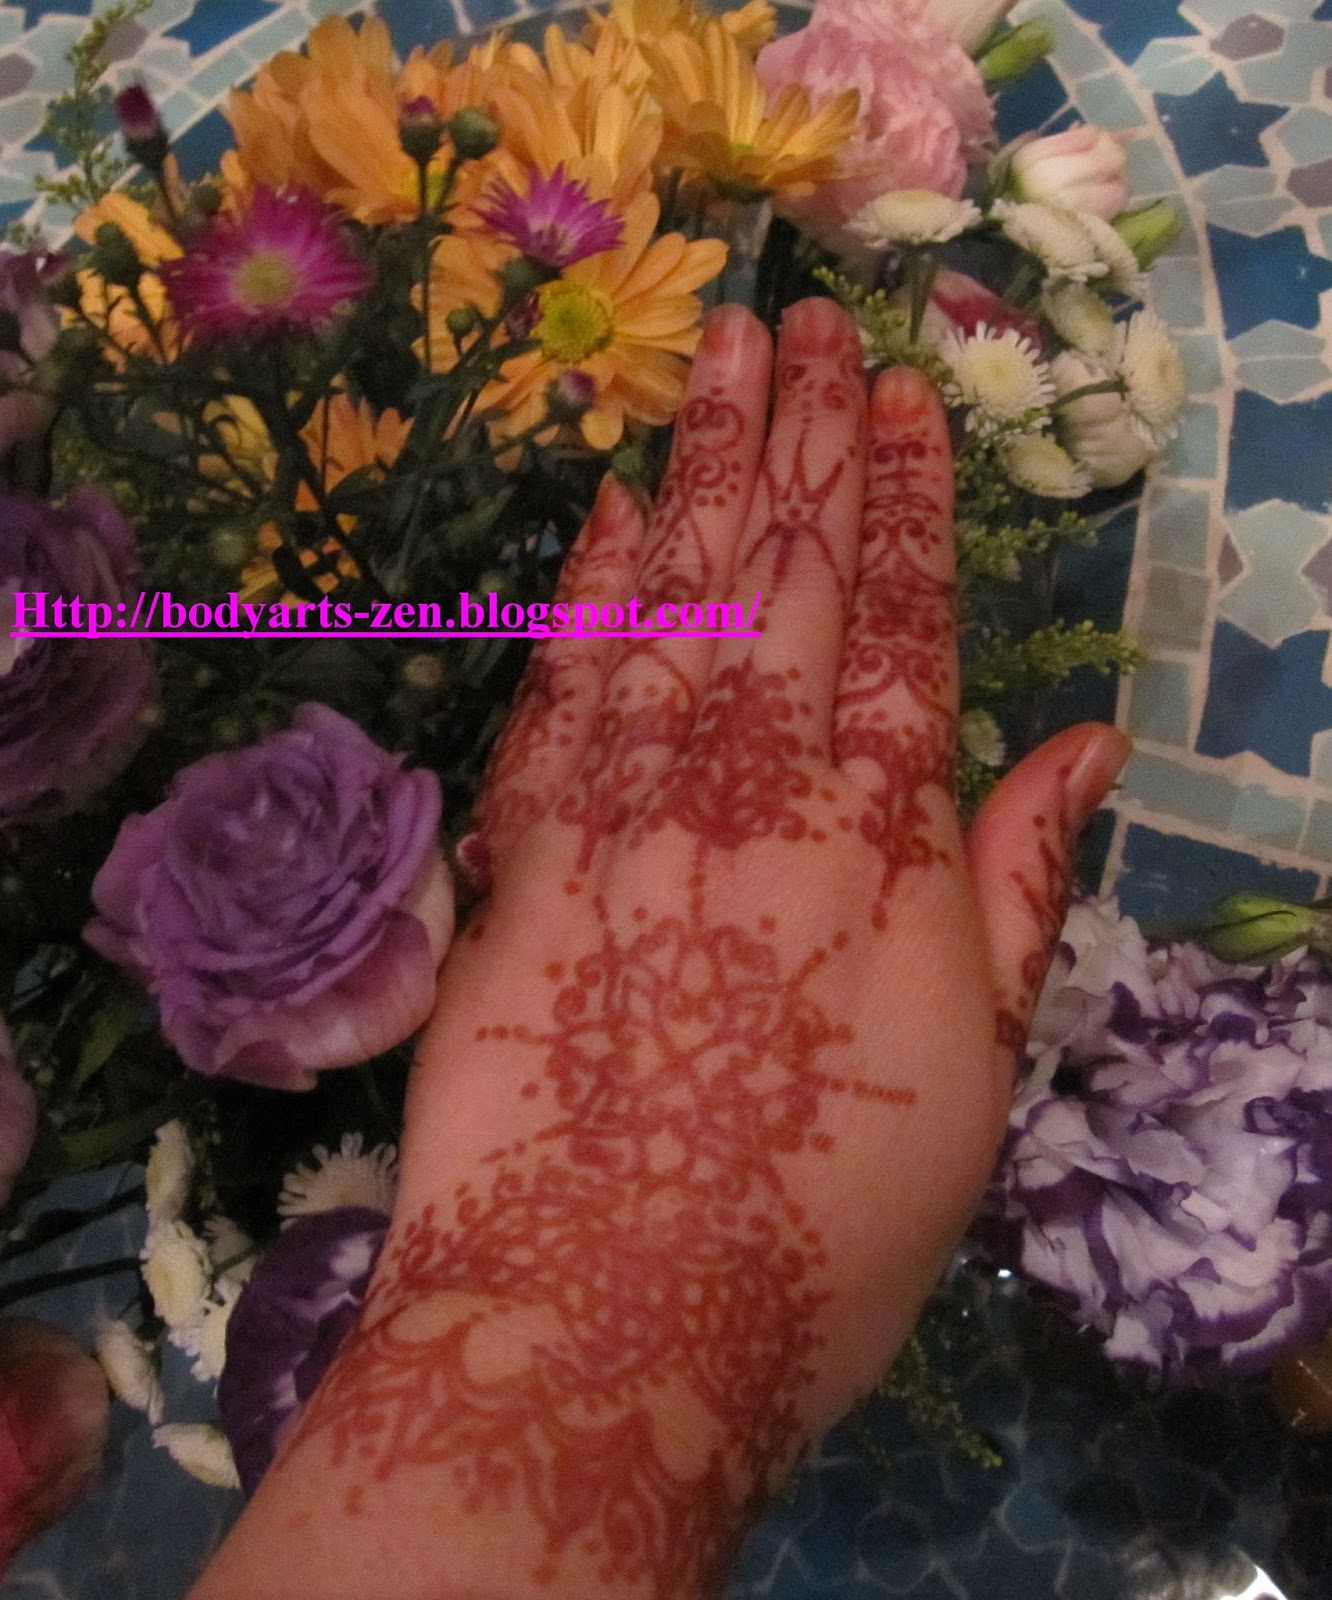 FACE PAINTING KL BODY ART HENNA TATTOO Natural Henna Or Inai